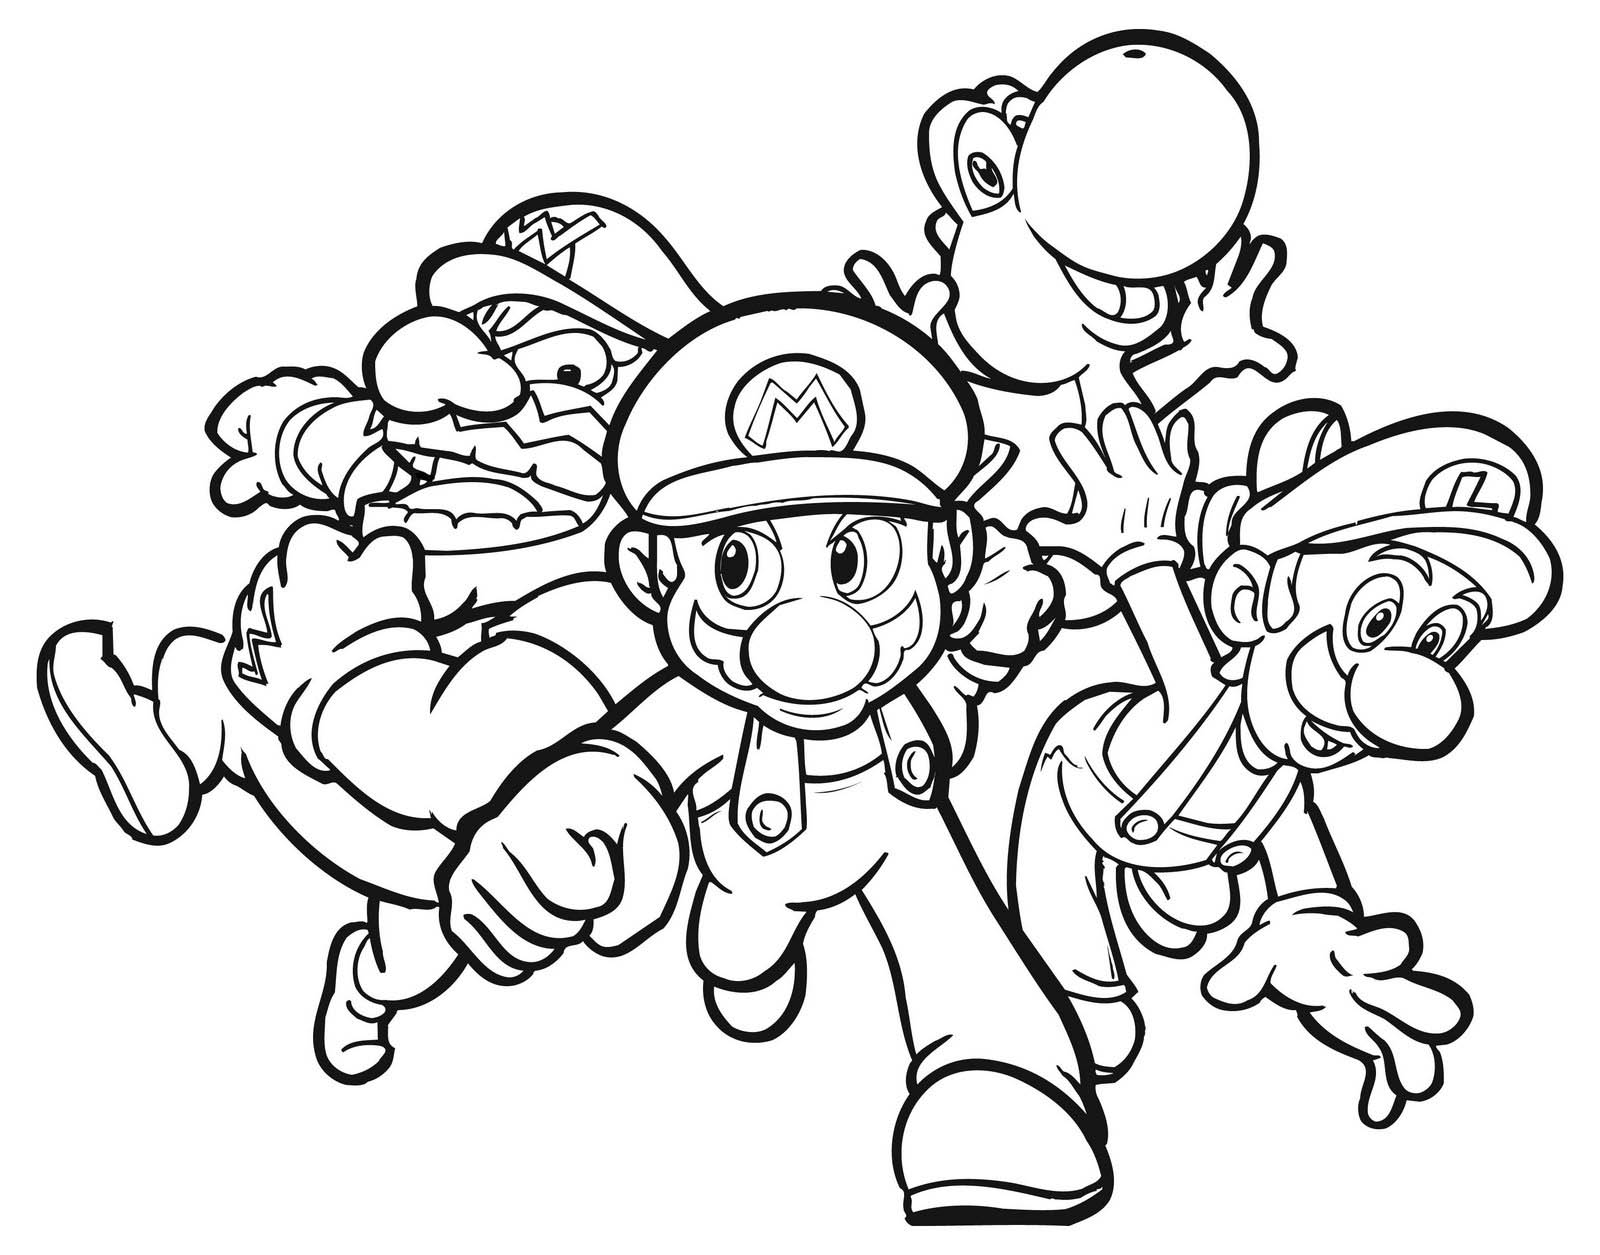 mario bros coloring pages - Coloring Pages